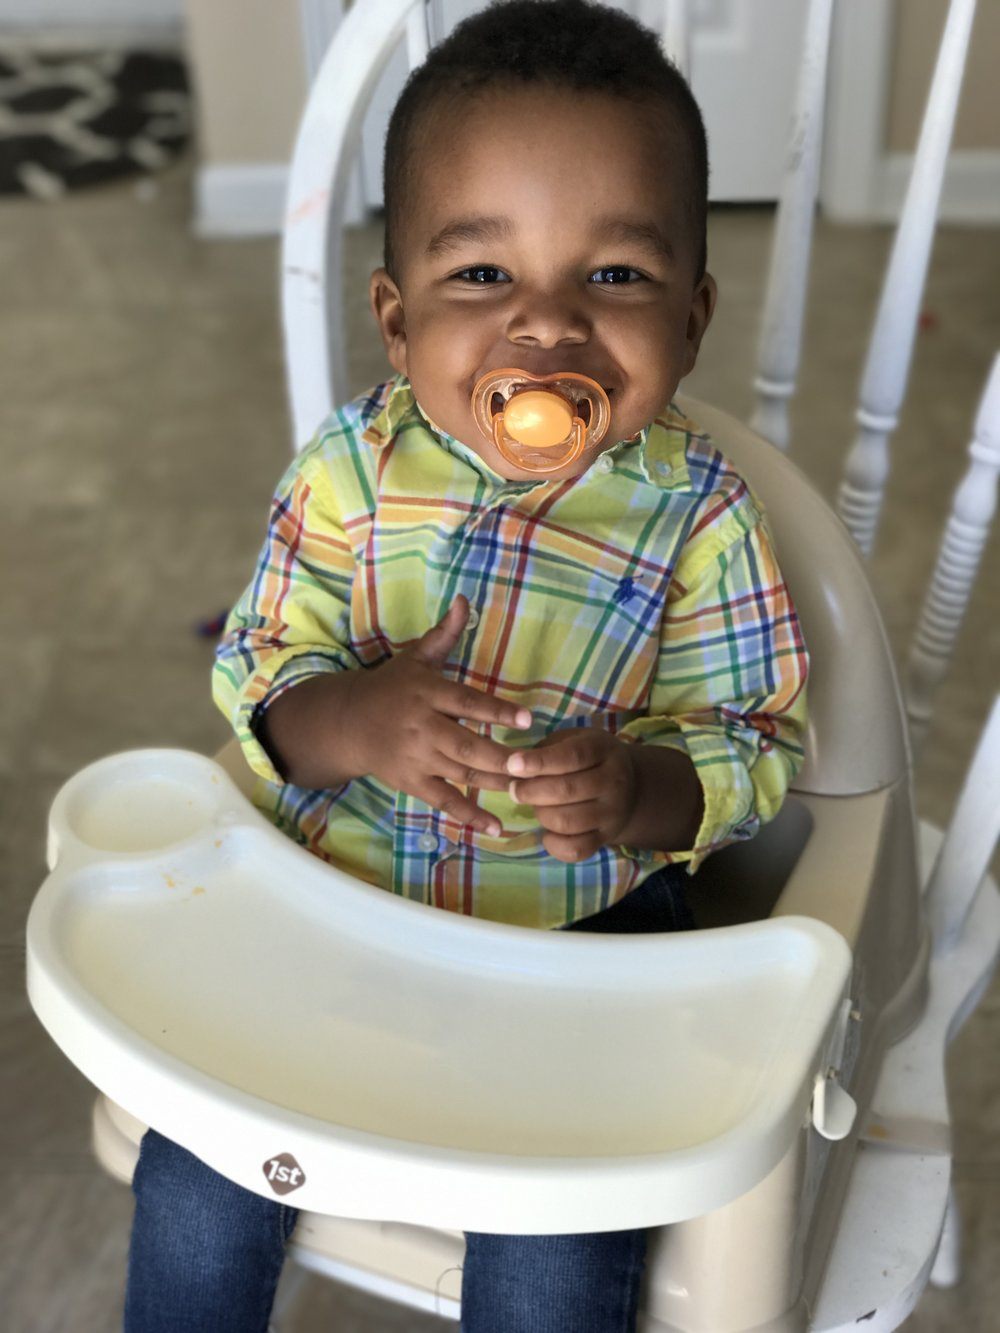 Sweet Micah will realize one day how much fun it is to eat!